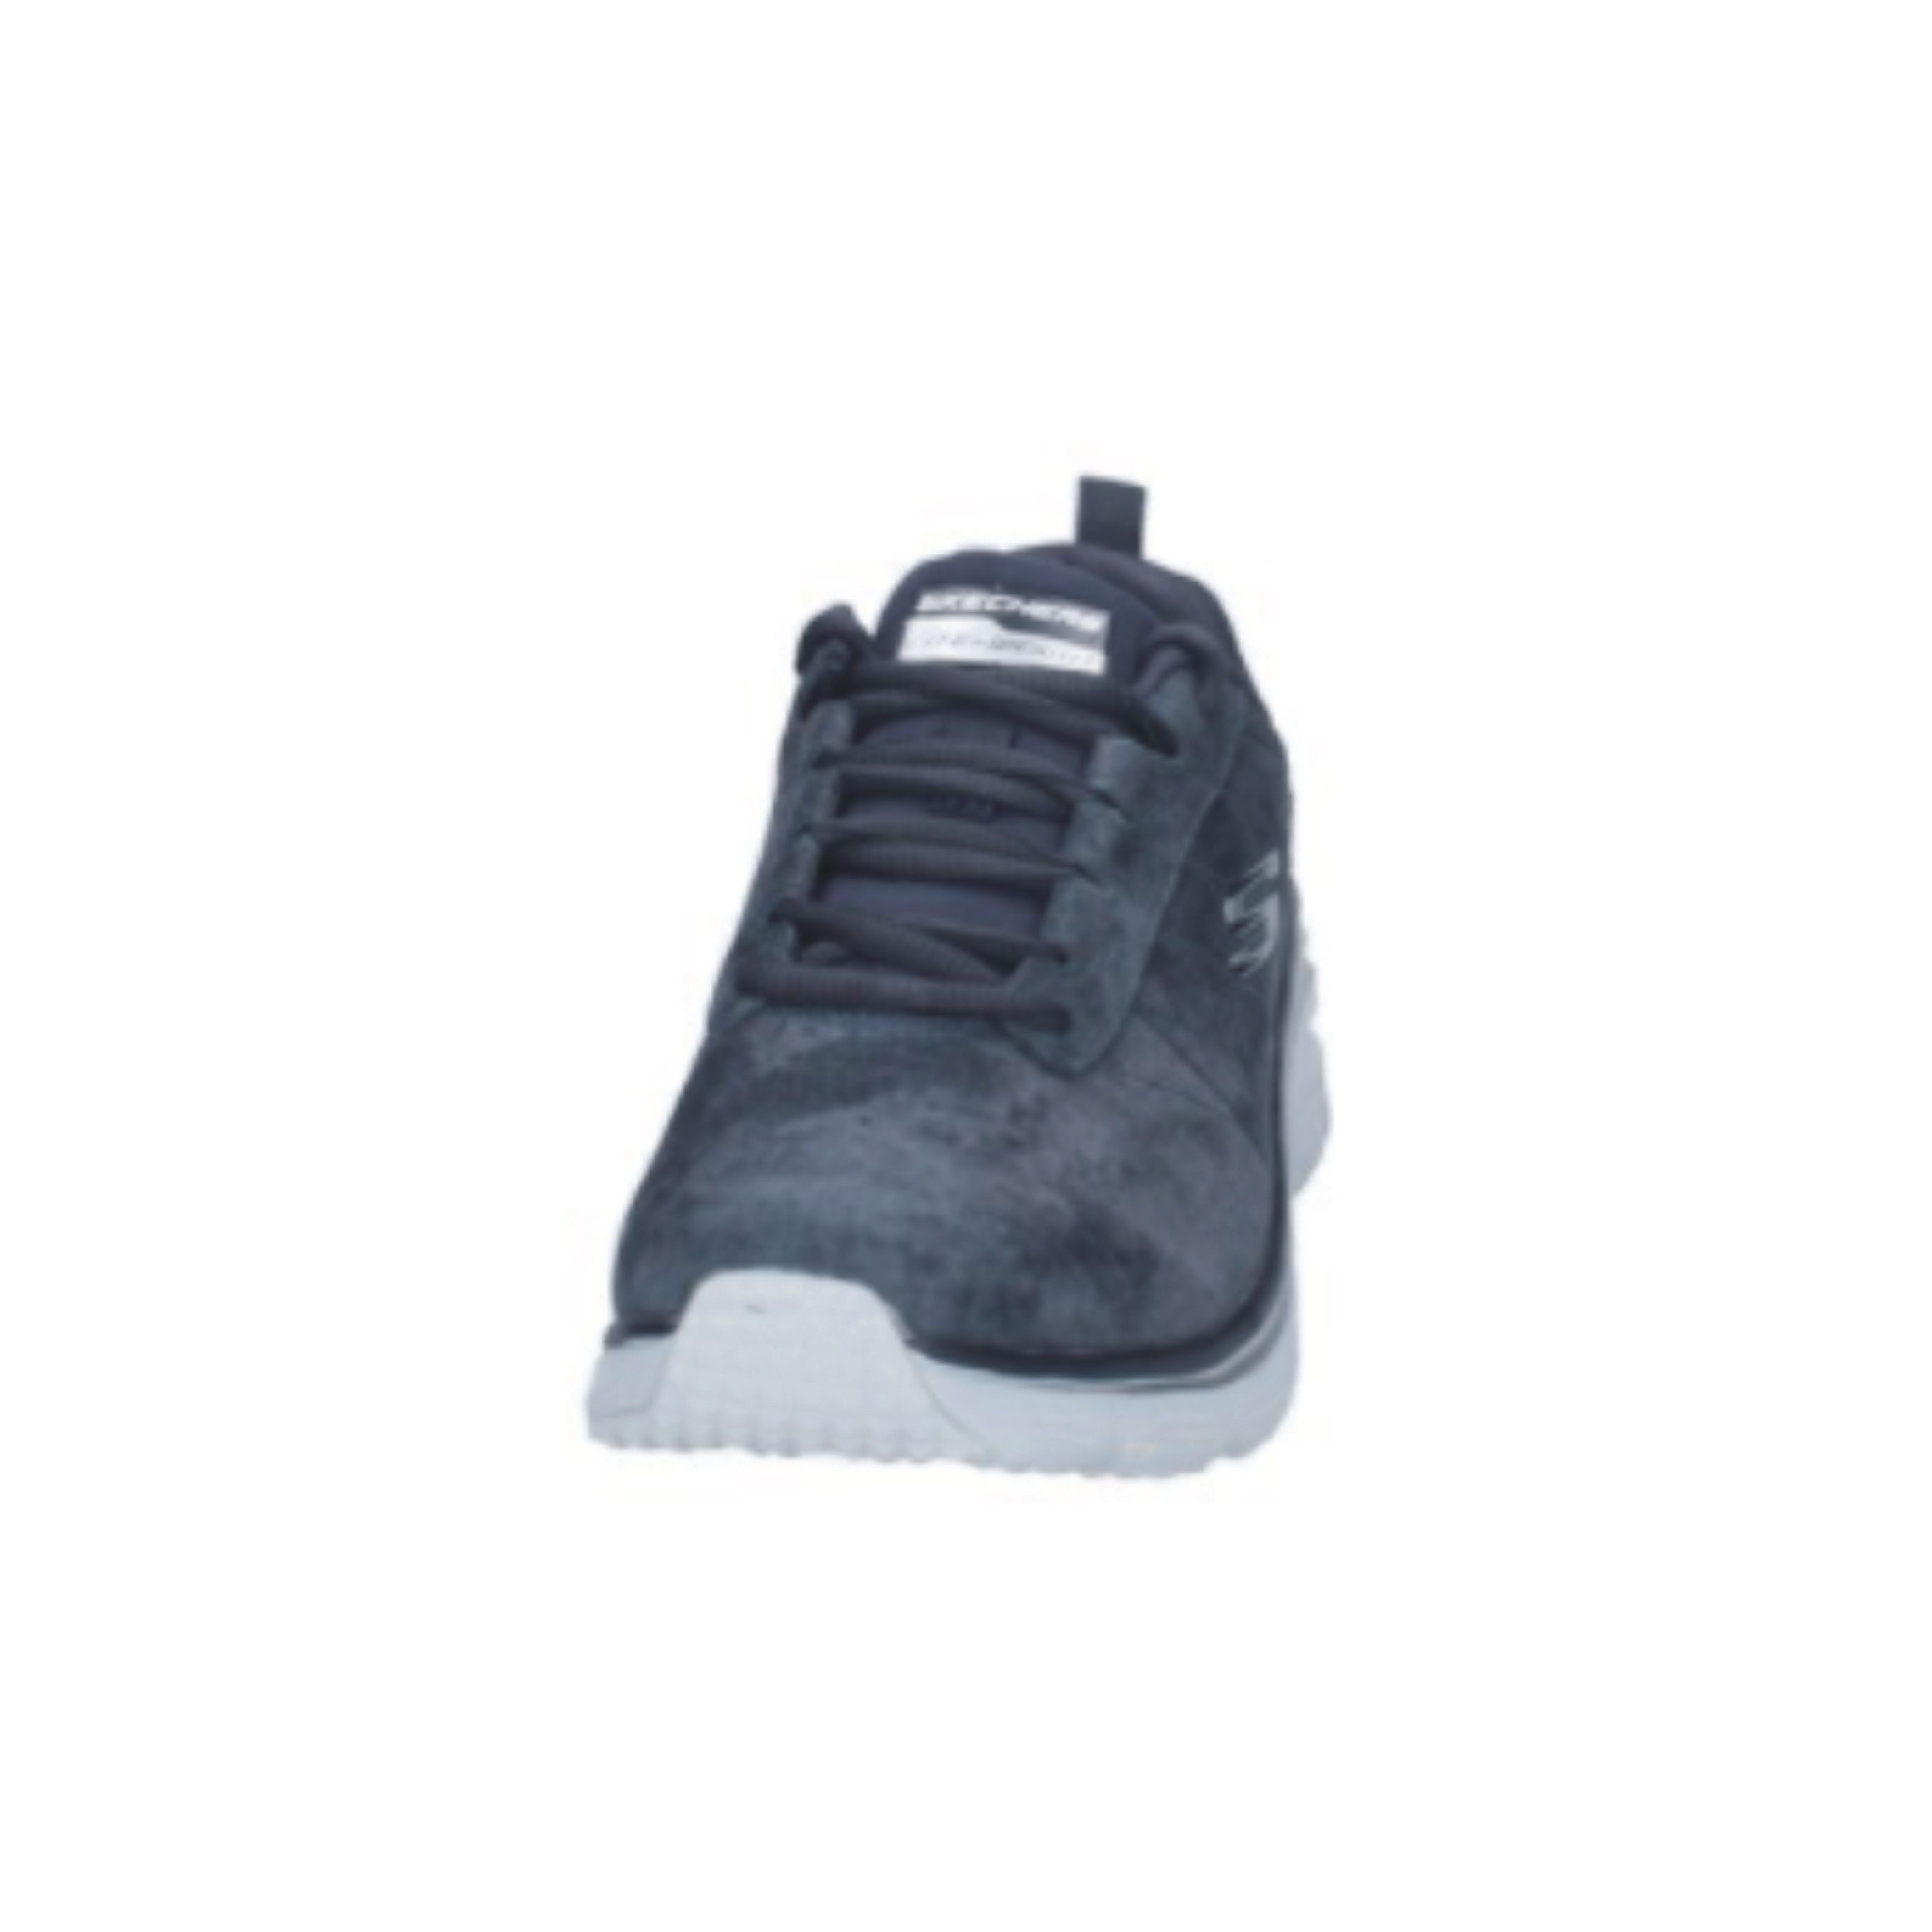 Sneakers Donna Fashion Fit Skechers 149472 NVY  -9